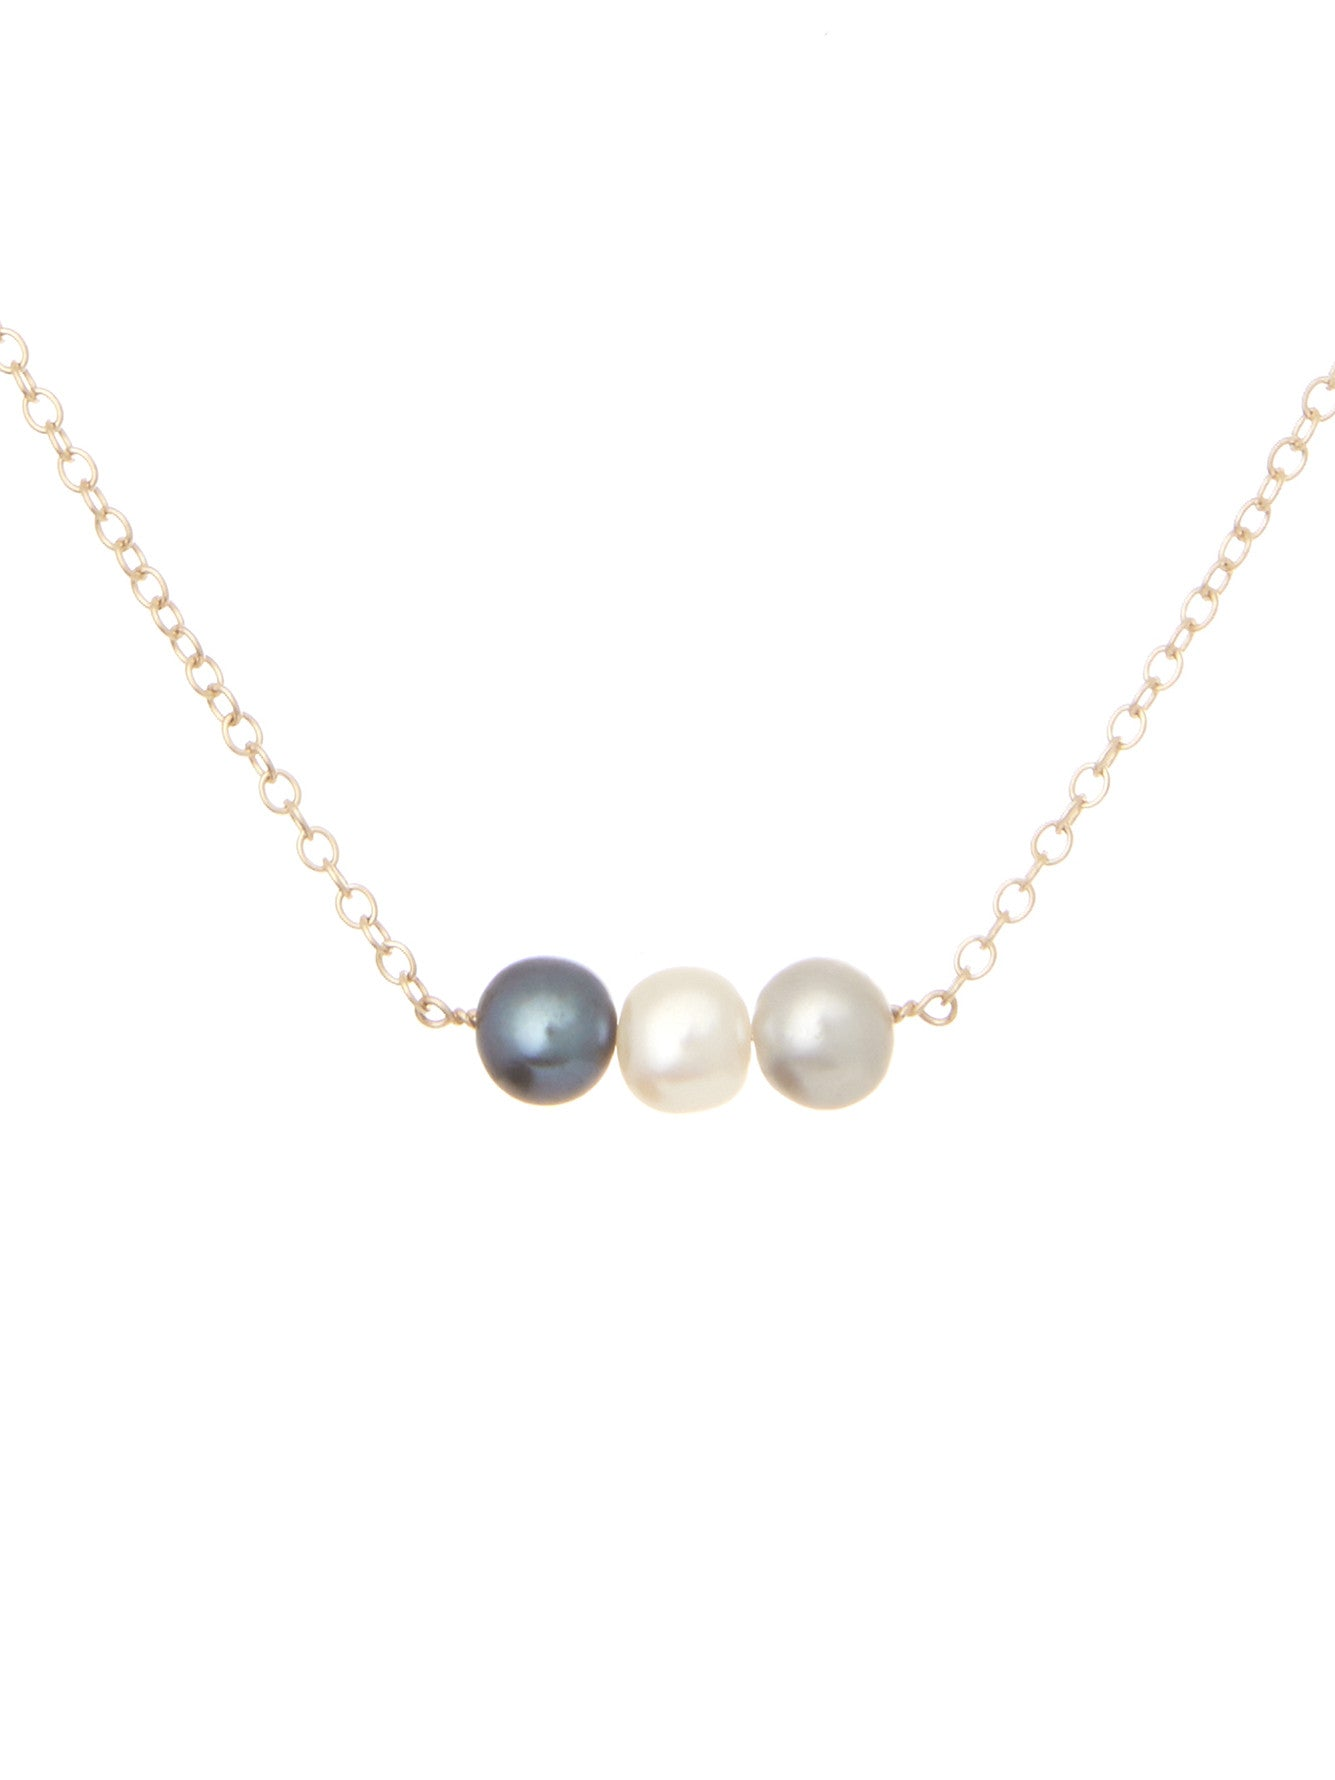 to on necklaces wearing guide sizes paradise how model necklace a selection inch the pearl pages expert